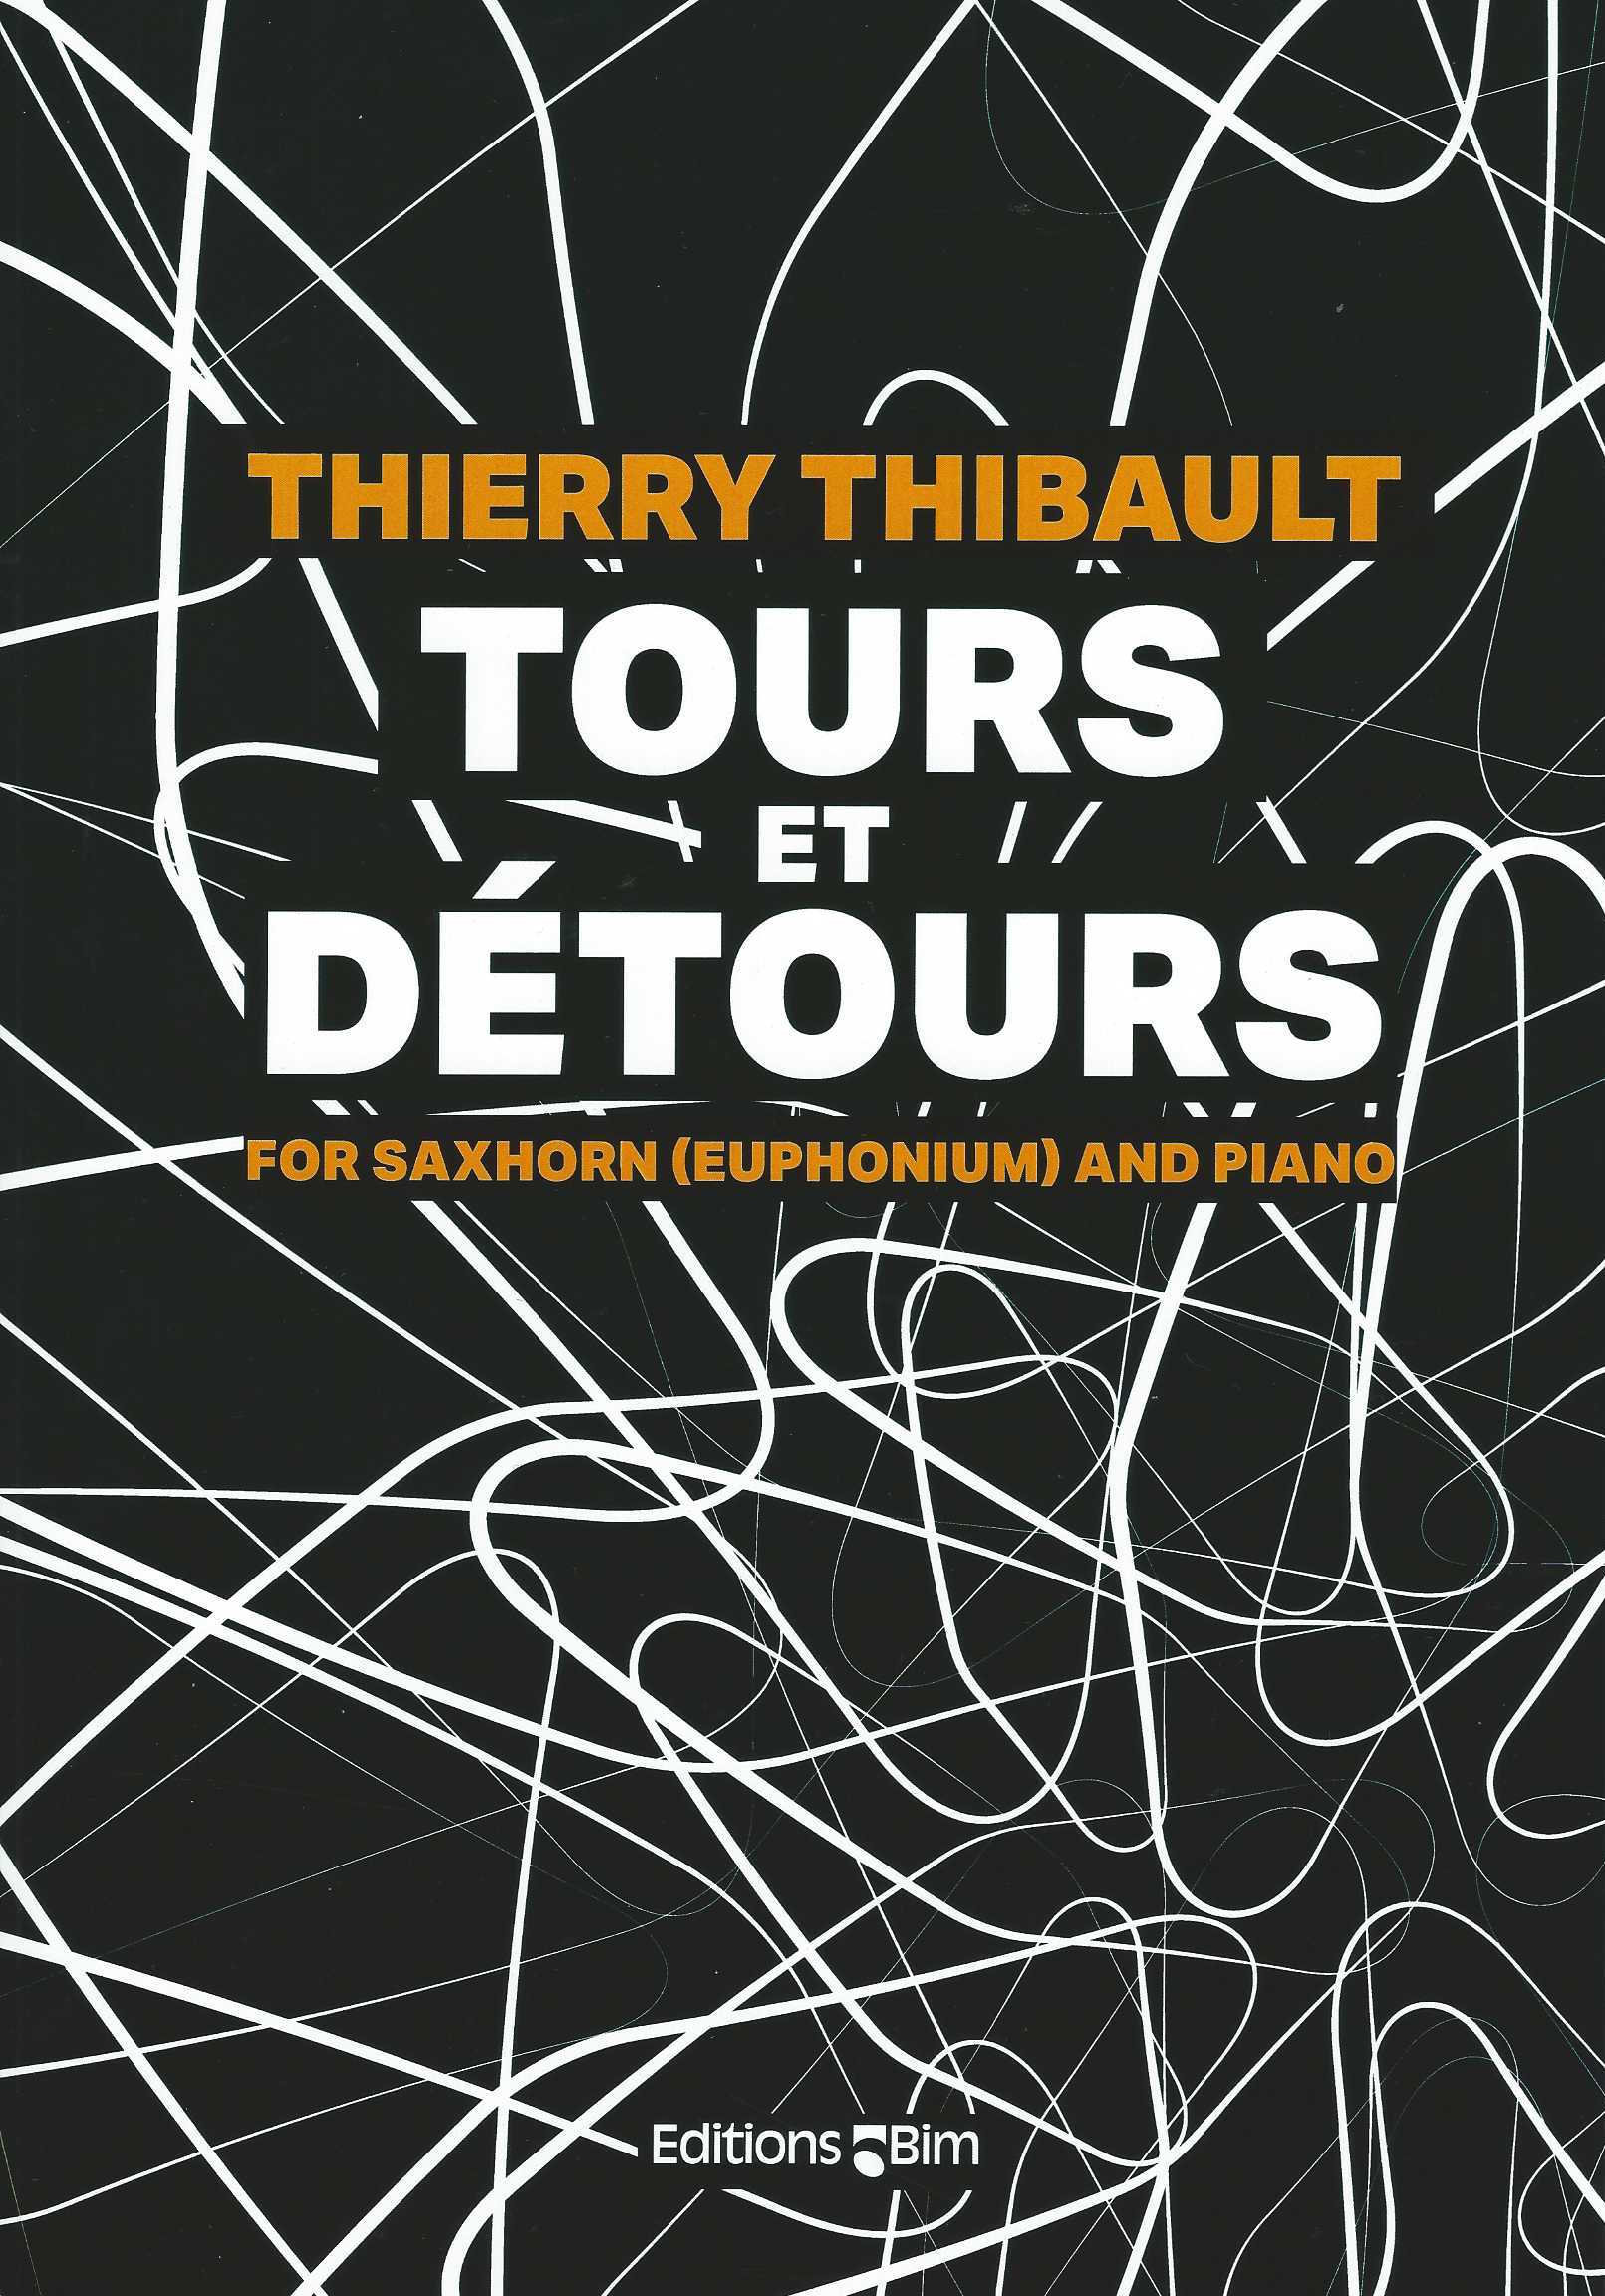 Tours et Detours - for Saxhorn or Euphonium and Piano - Thierry Thibault